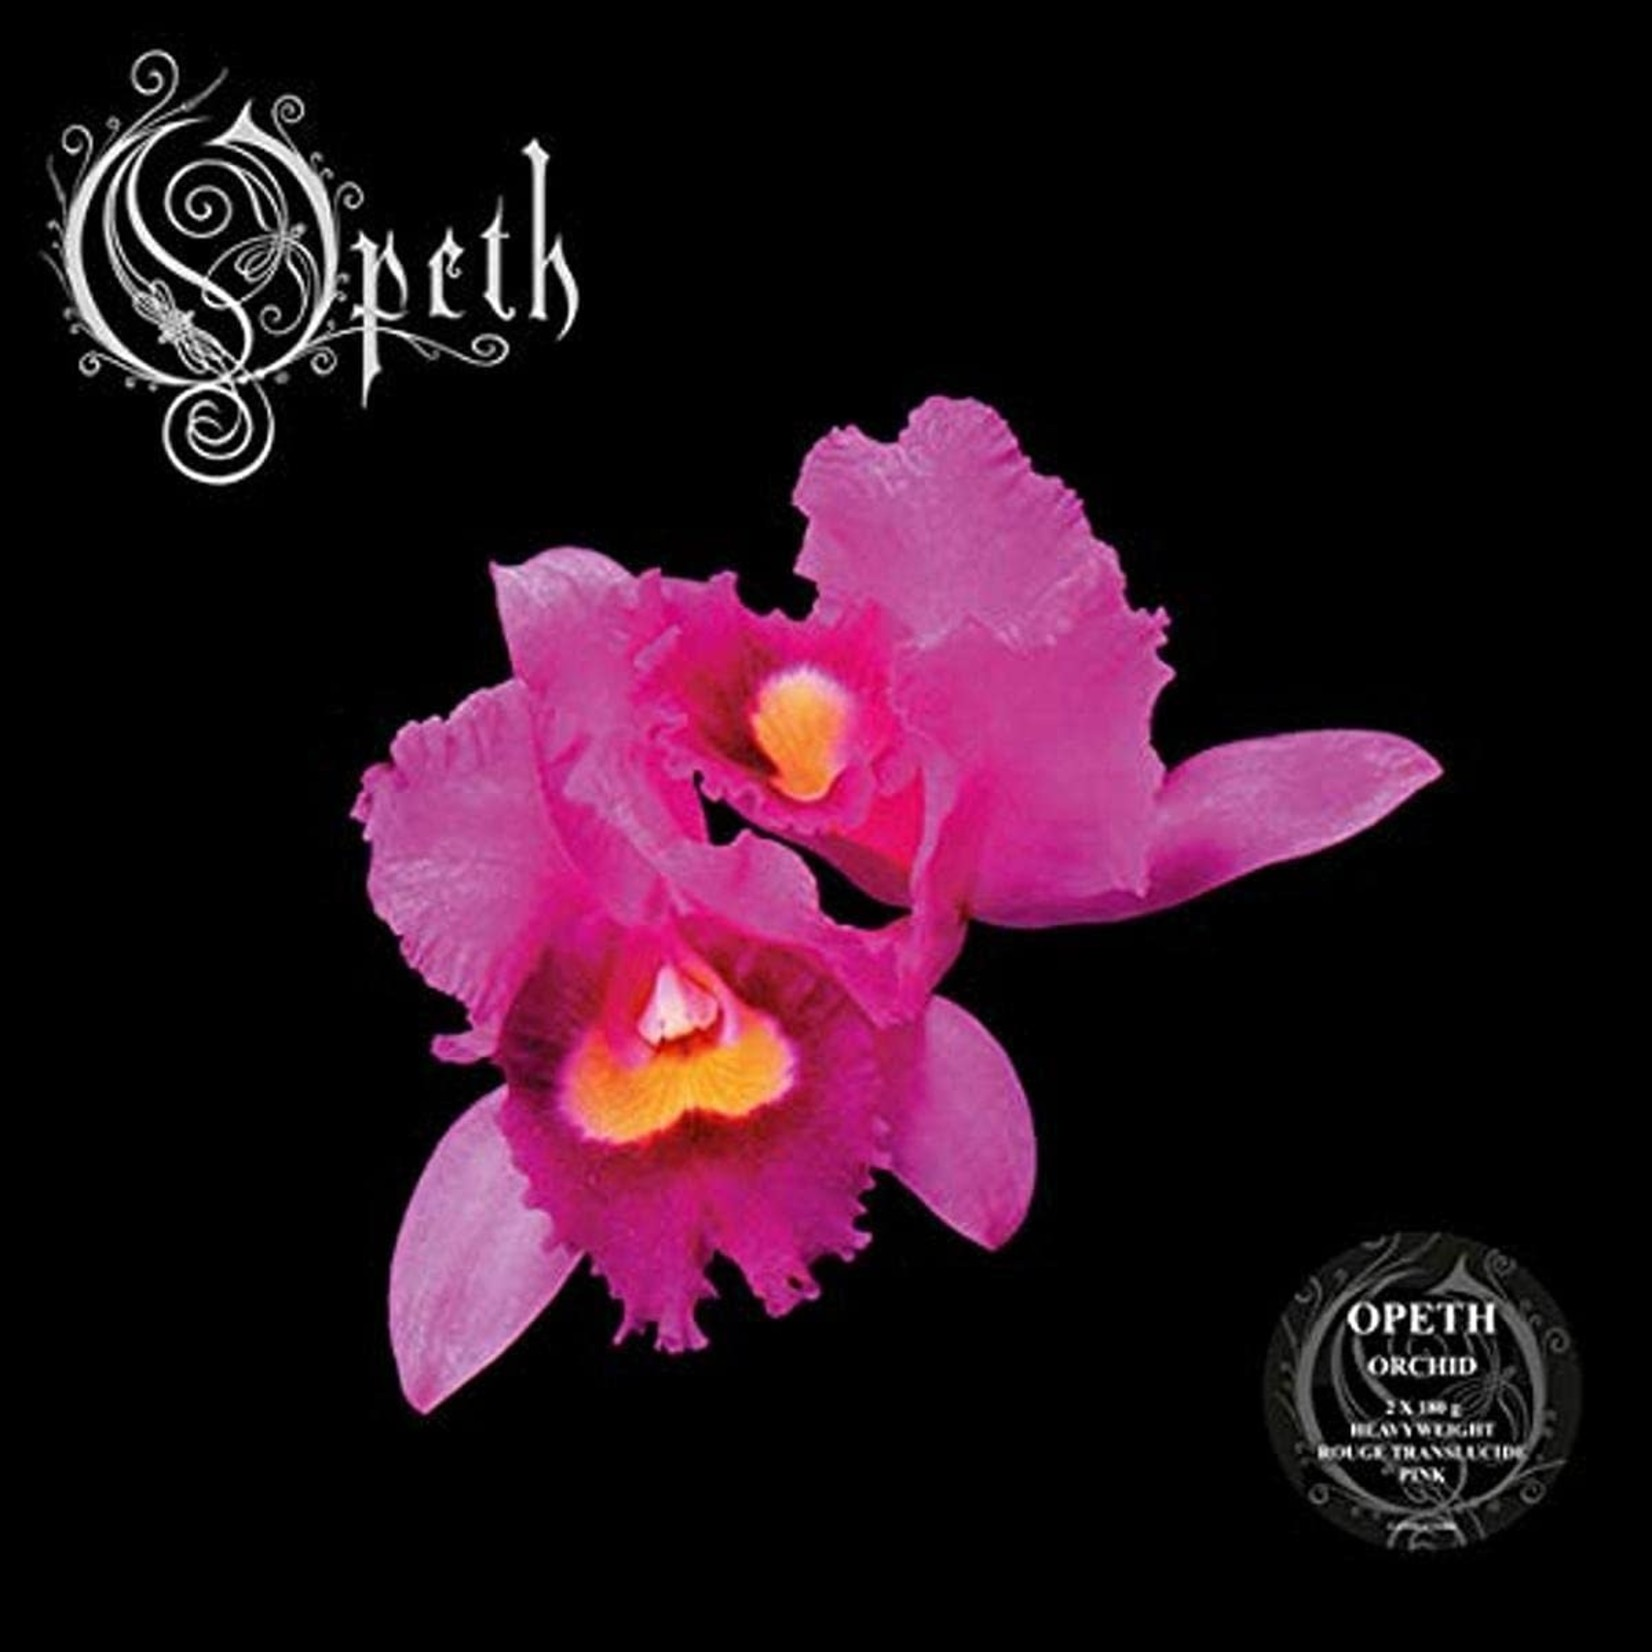 Vinyl Opeth - Orchid  (Pink,Red & White Marble Vinyl)